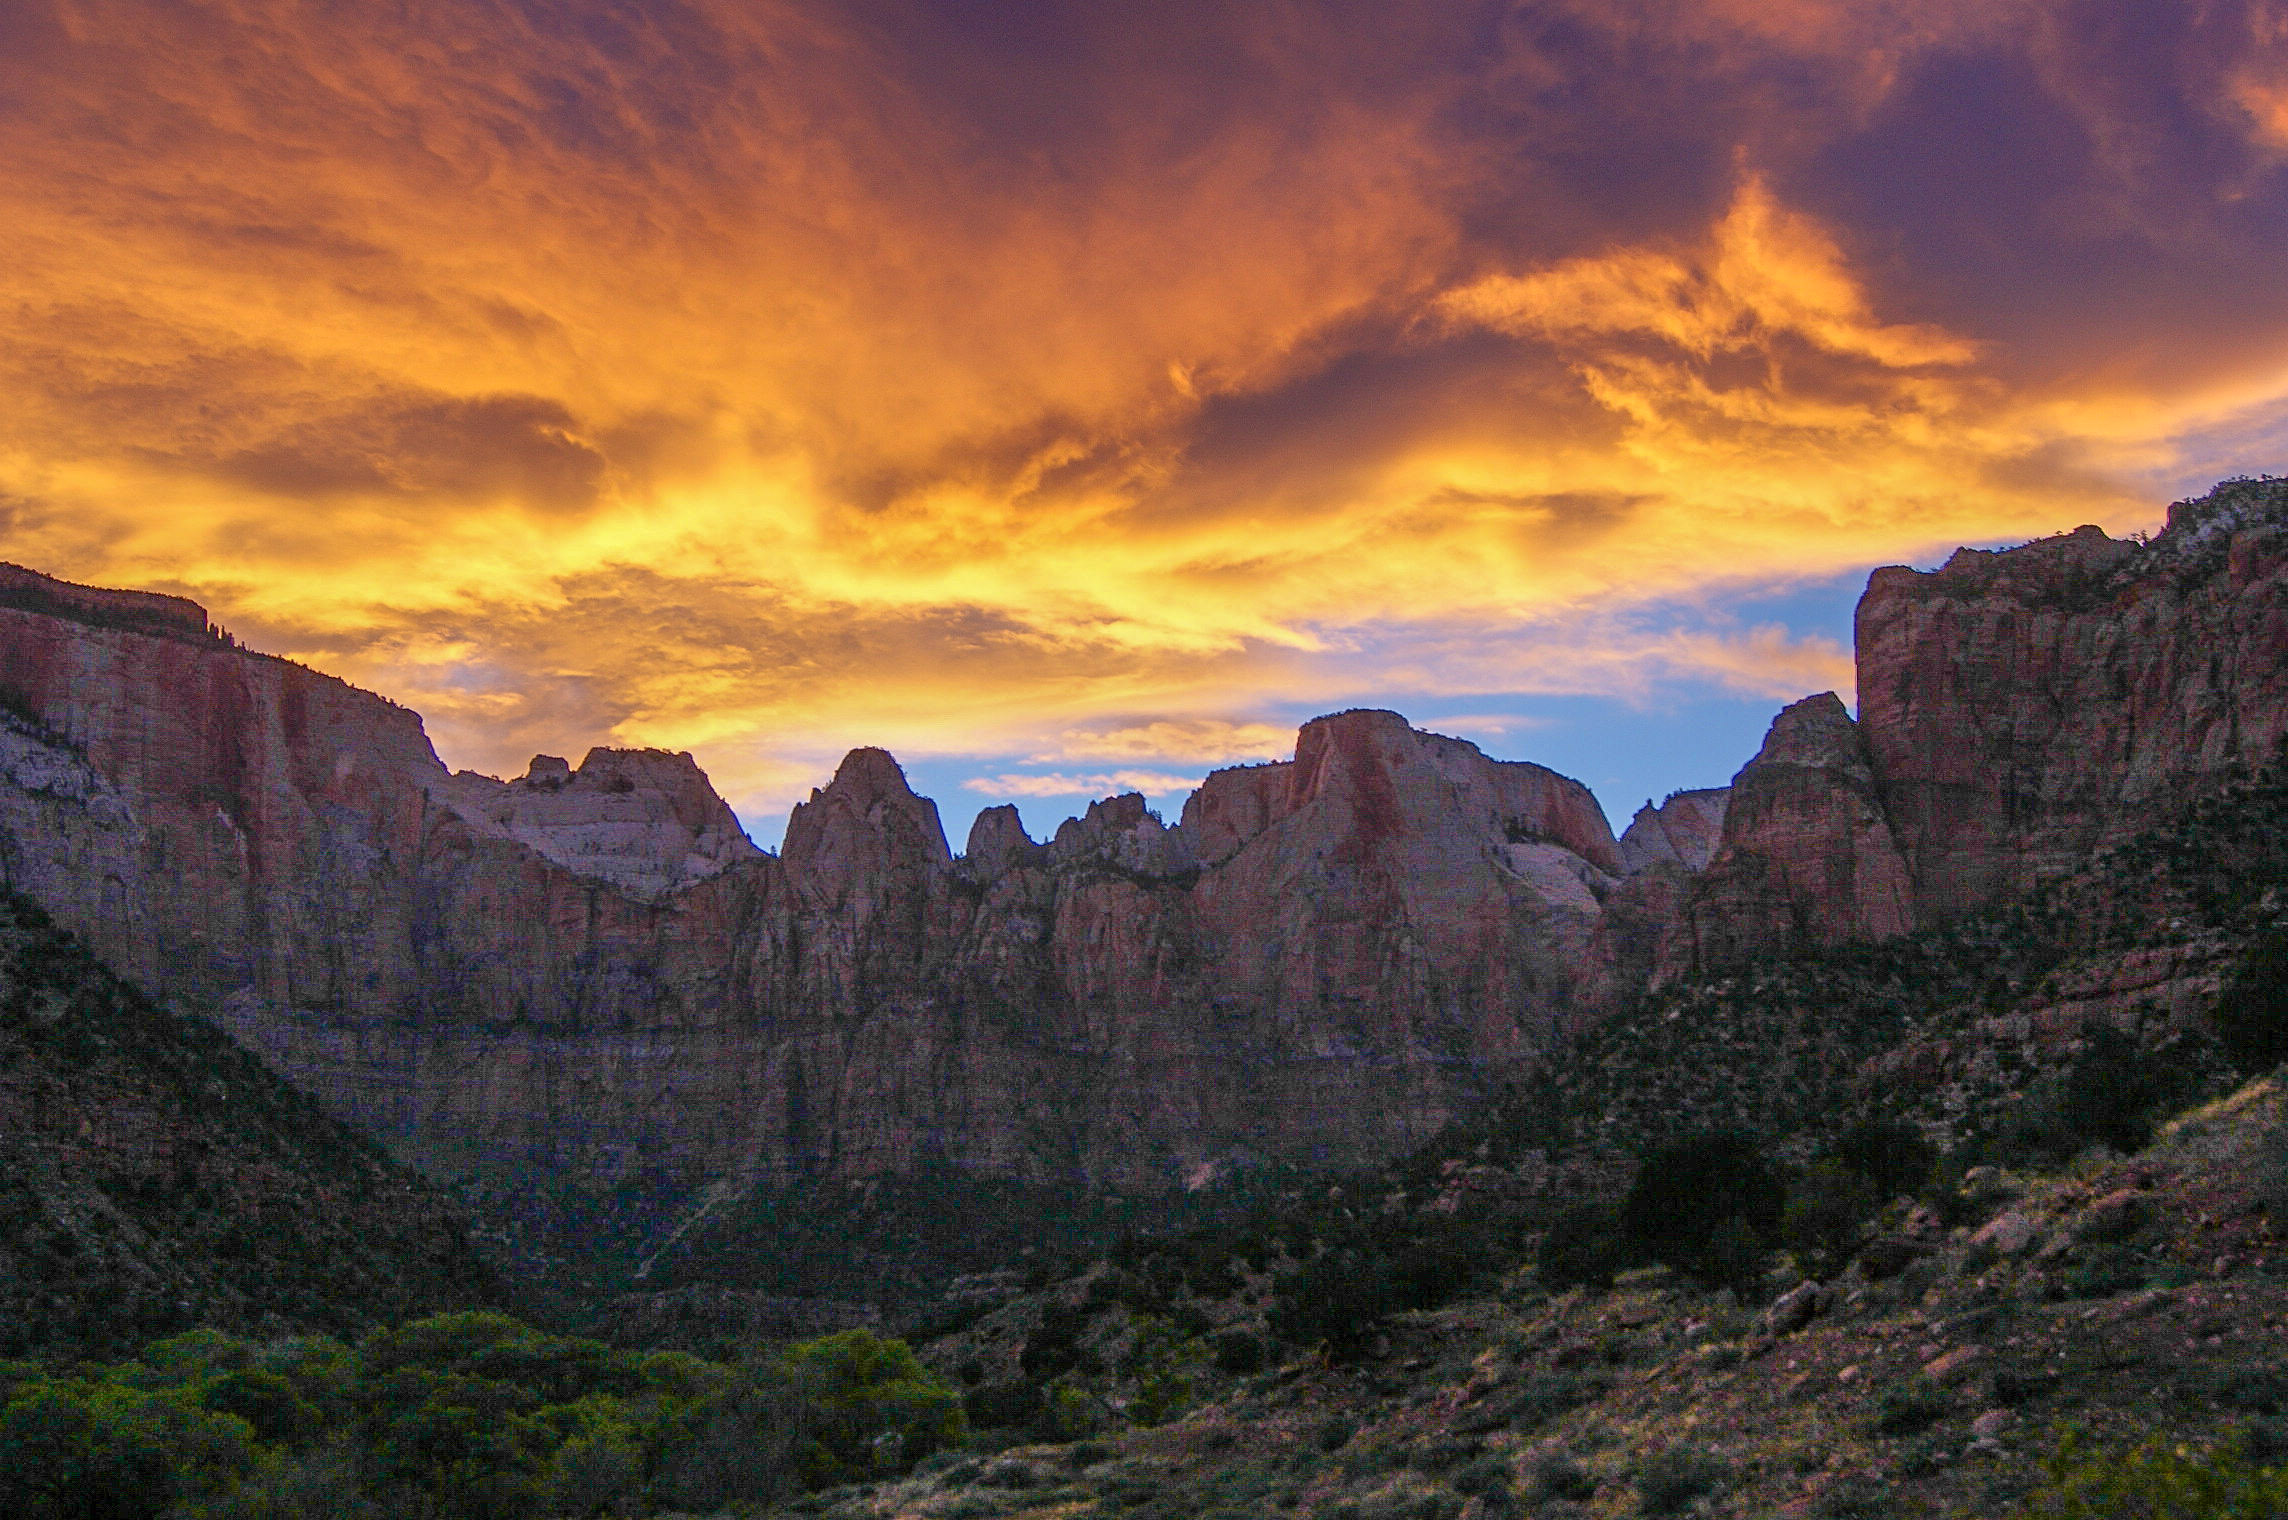 Fall Hills Wallpaper Dusk And Sunset Skies Over Zion National Park Utah Image